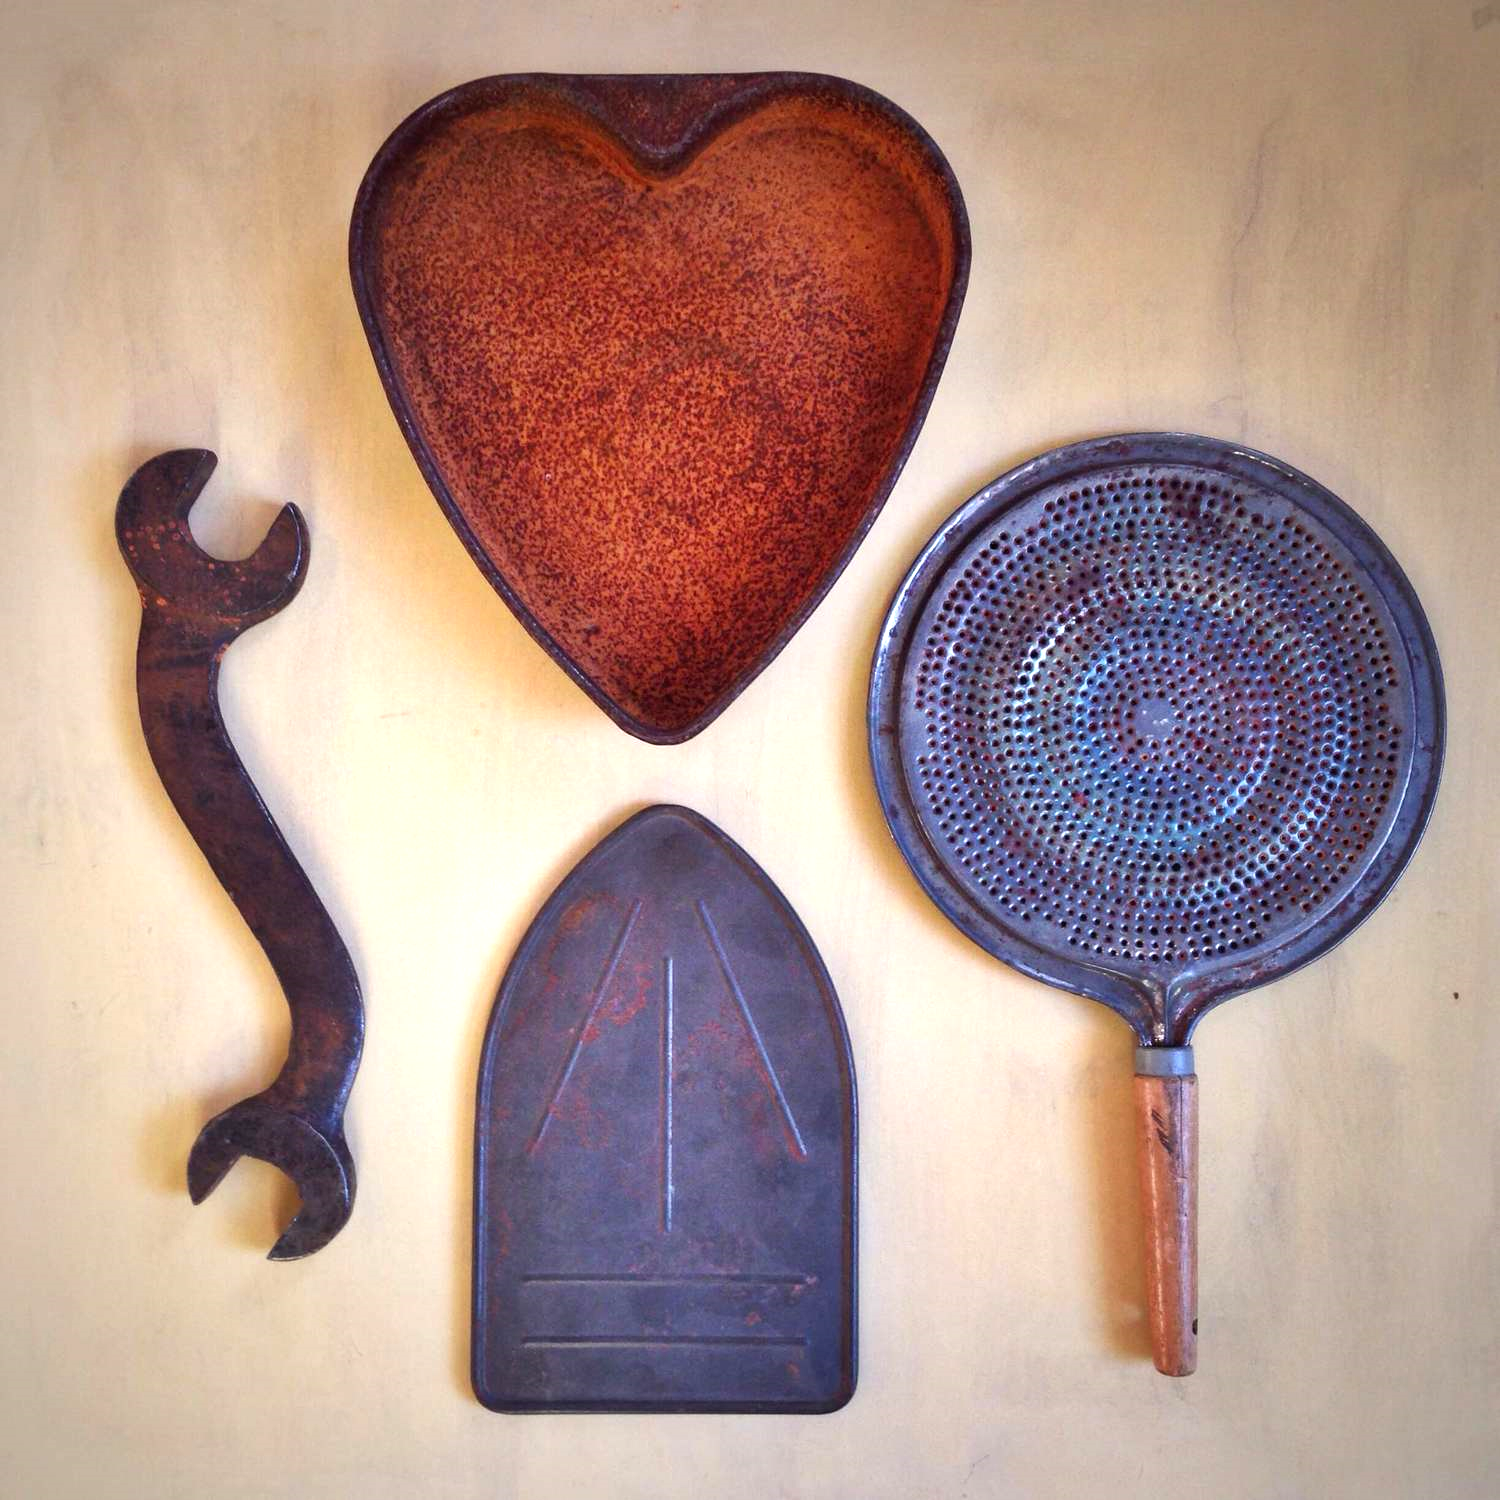 My finds from Mildred Johnson's studio.